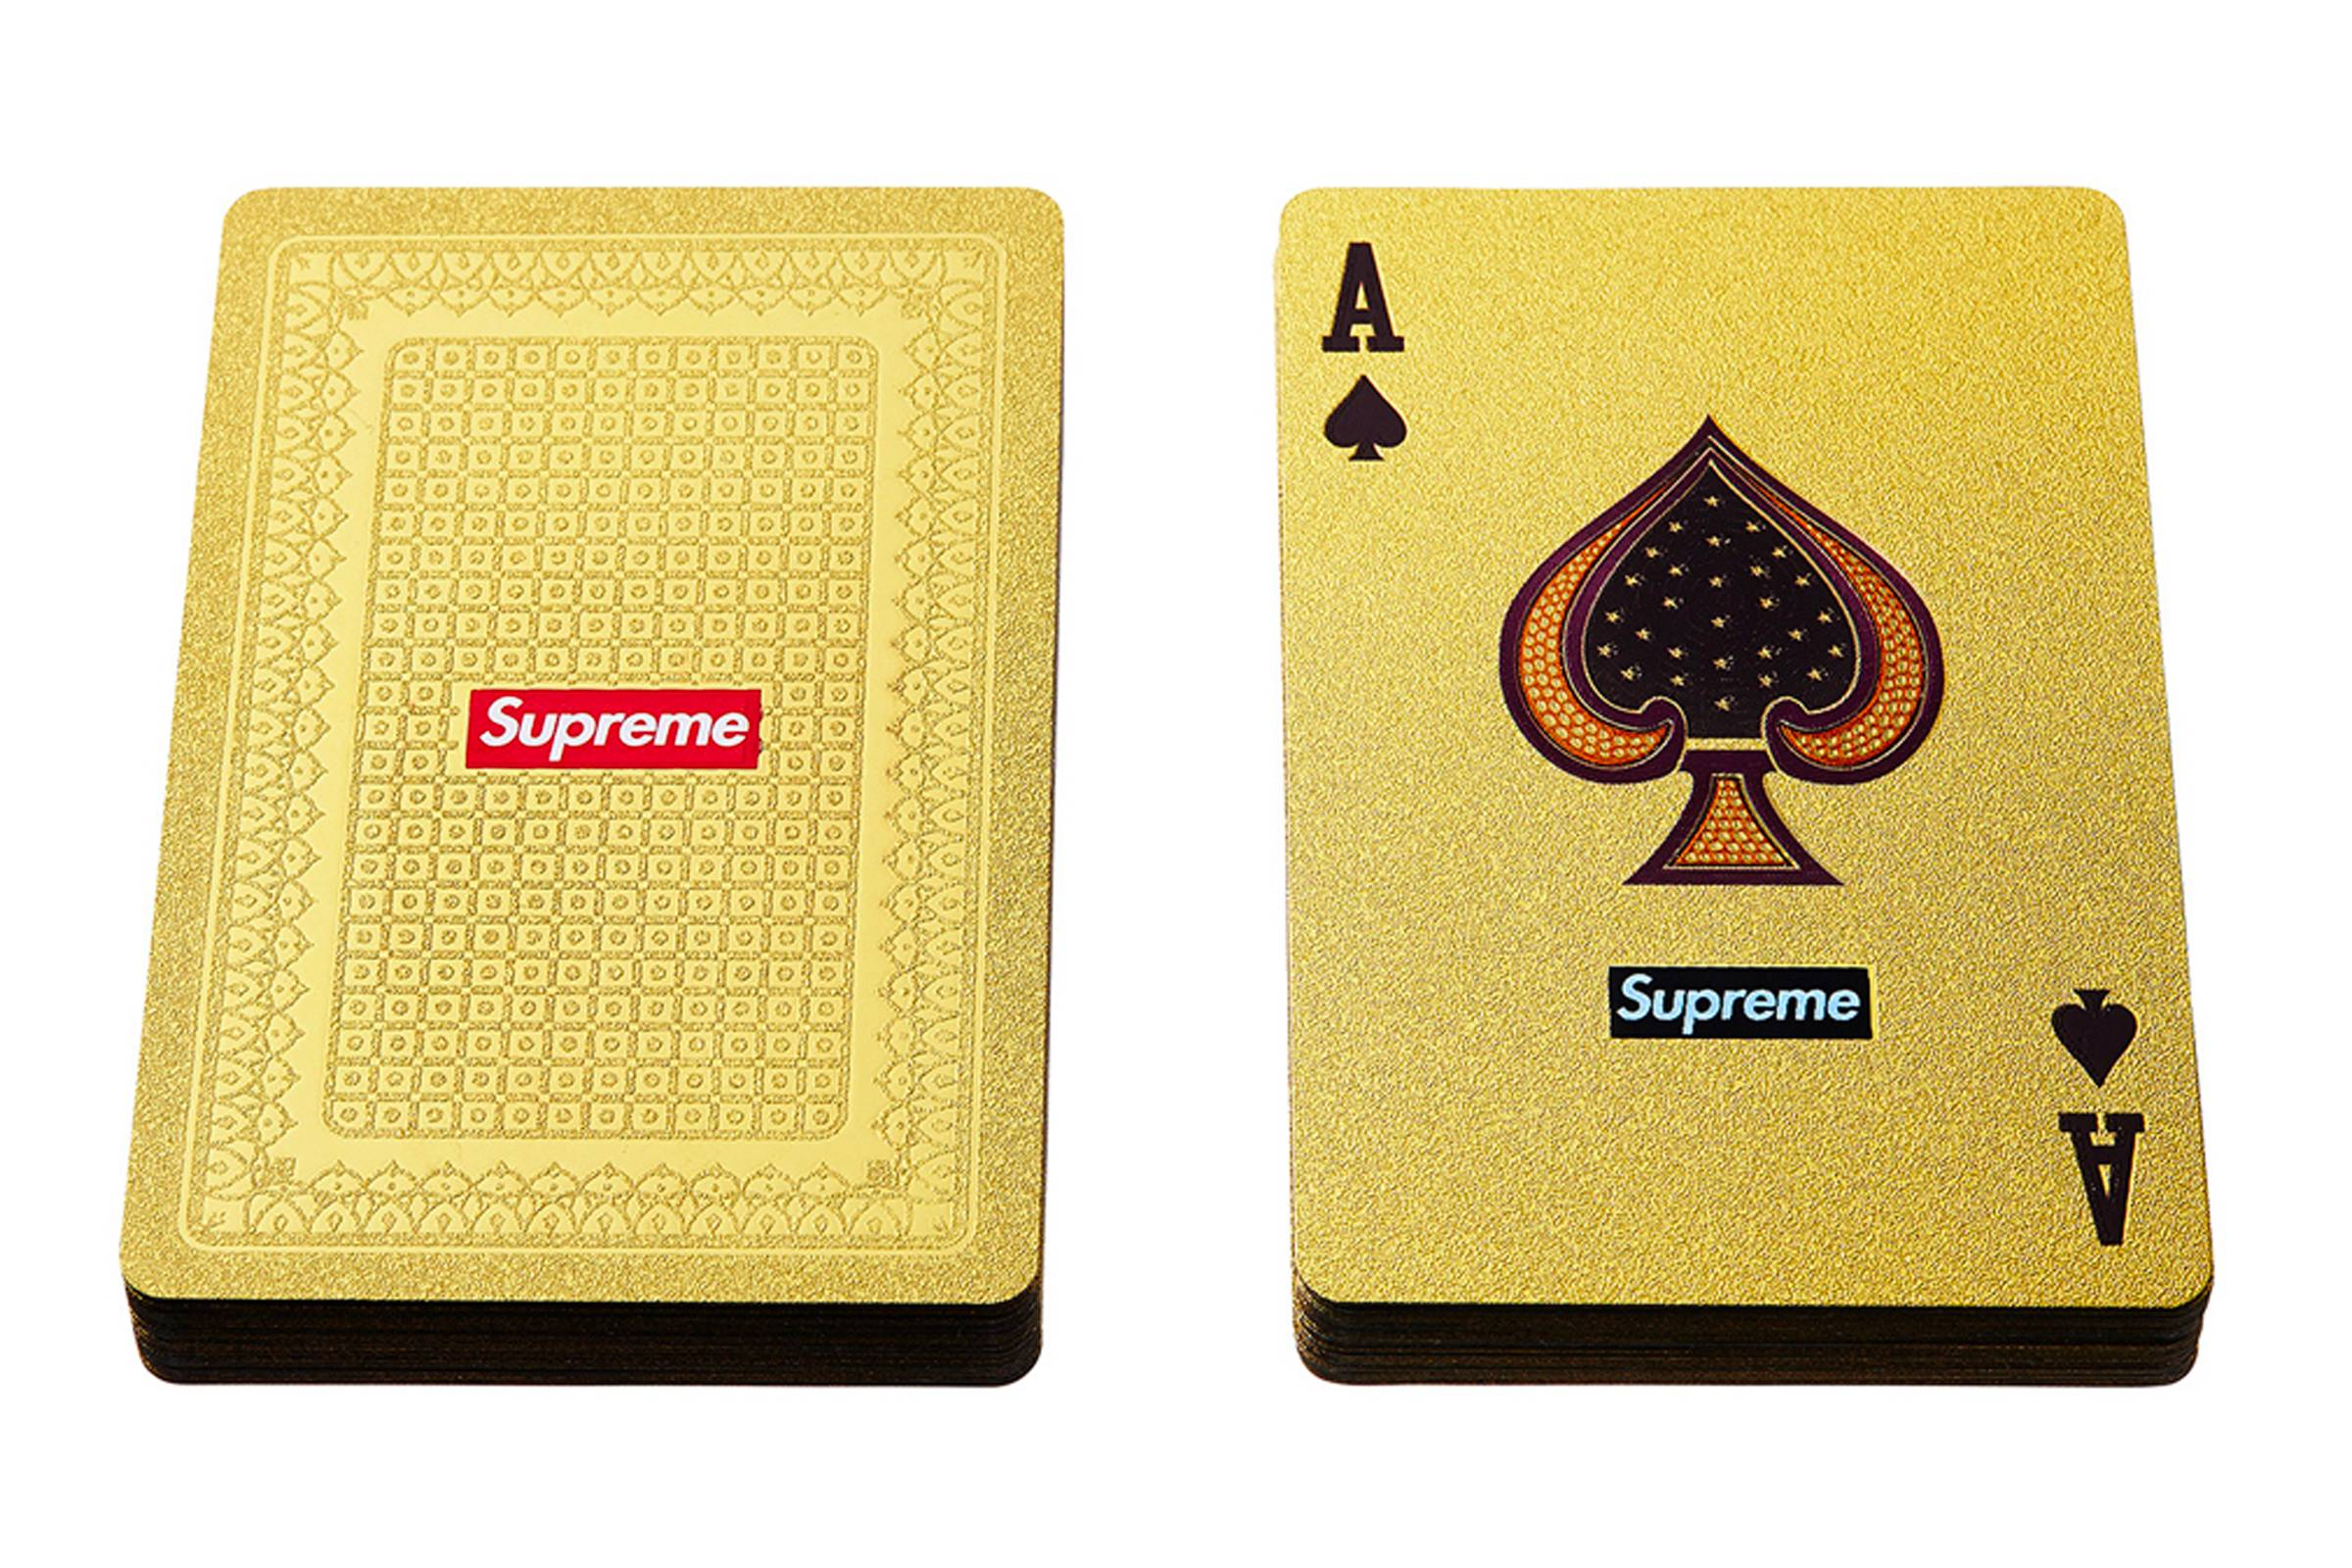 Supreme Gold Deck Playing Cards (Fall/Winter 2013